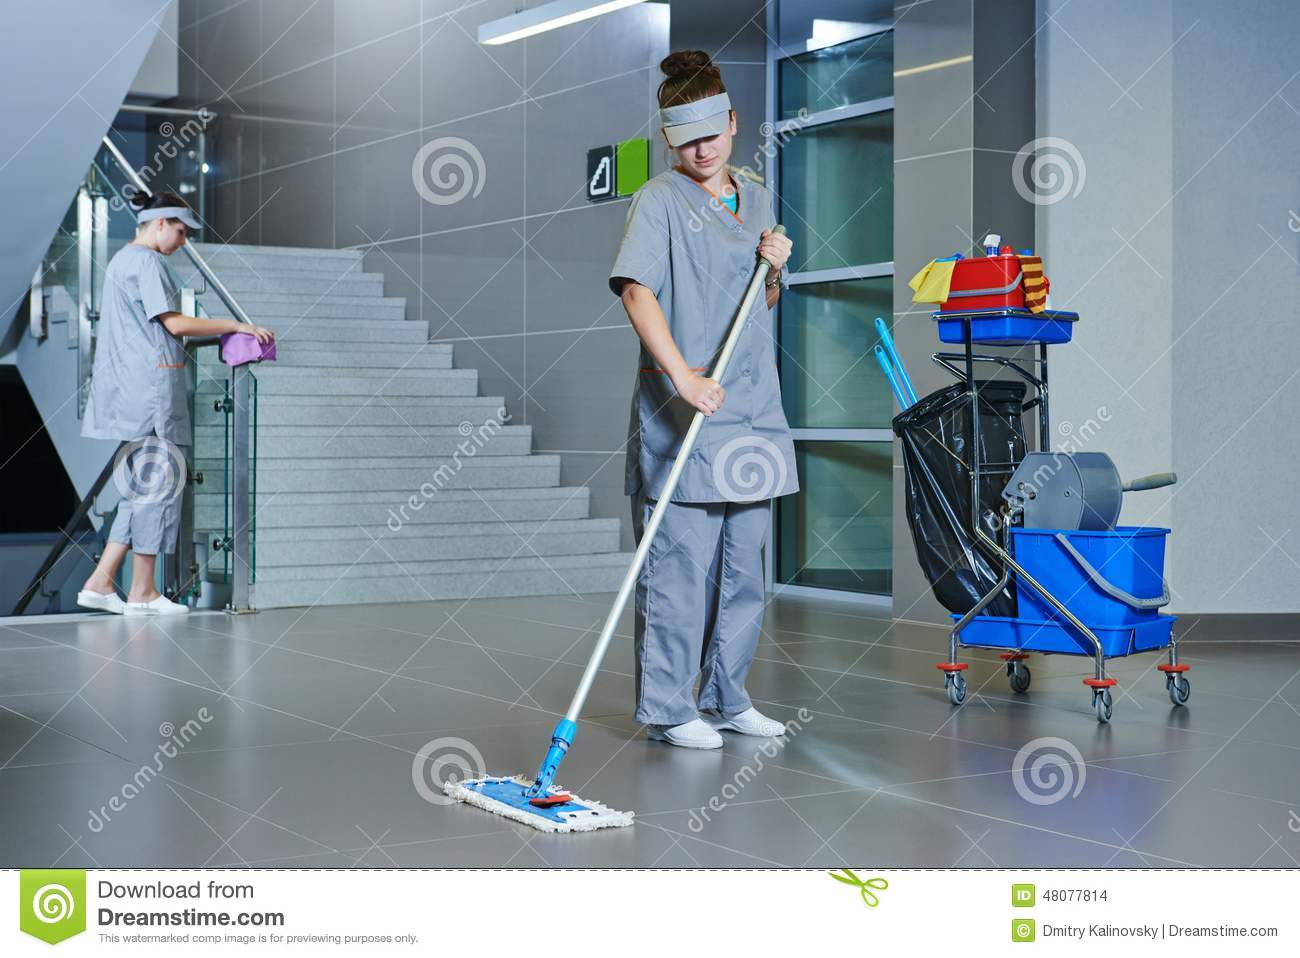 Worker cleaning floor with machine stock photo image for Floor cleaning services